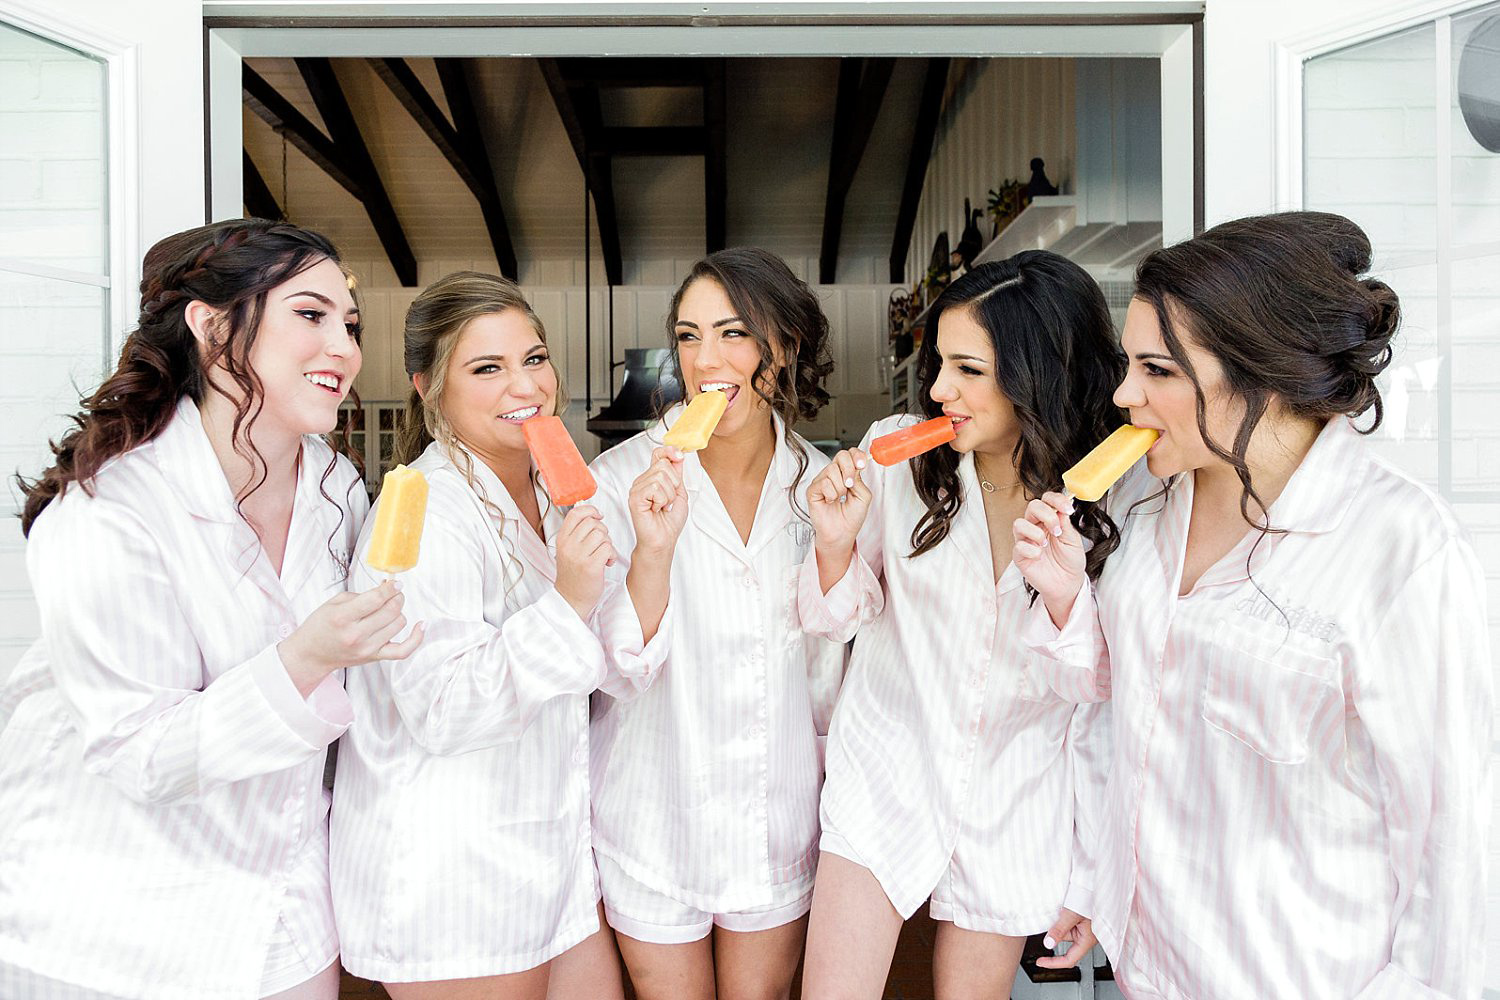 Bridesmaids eating popsicles